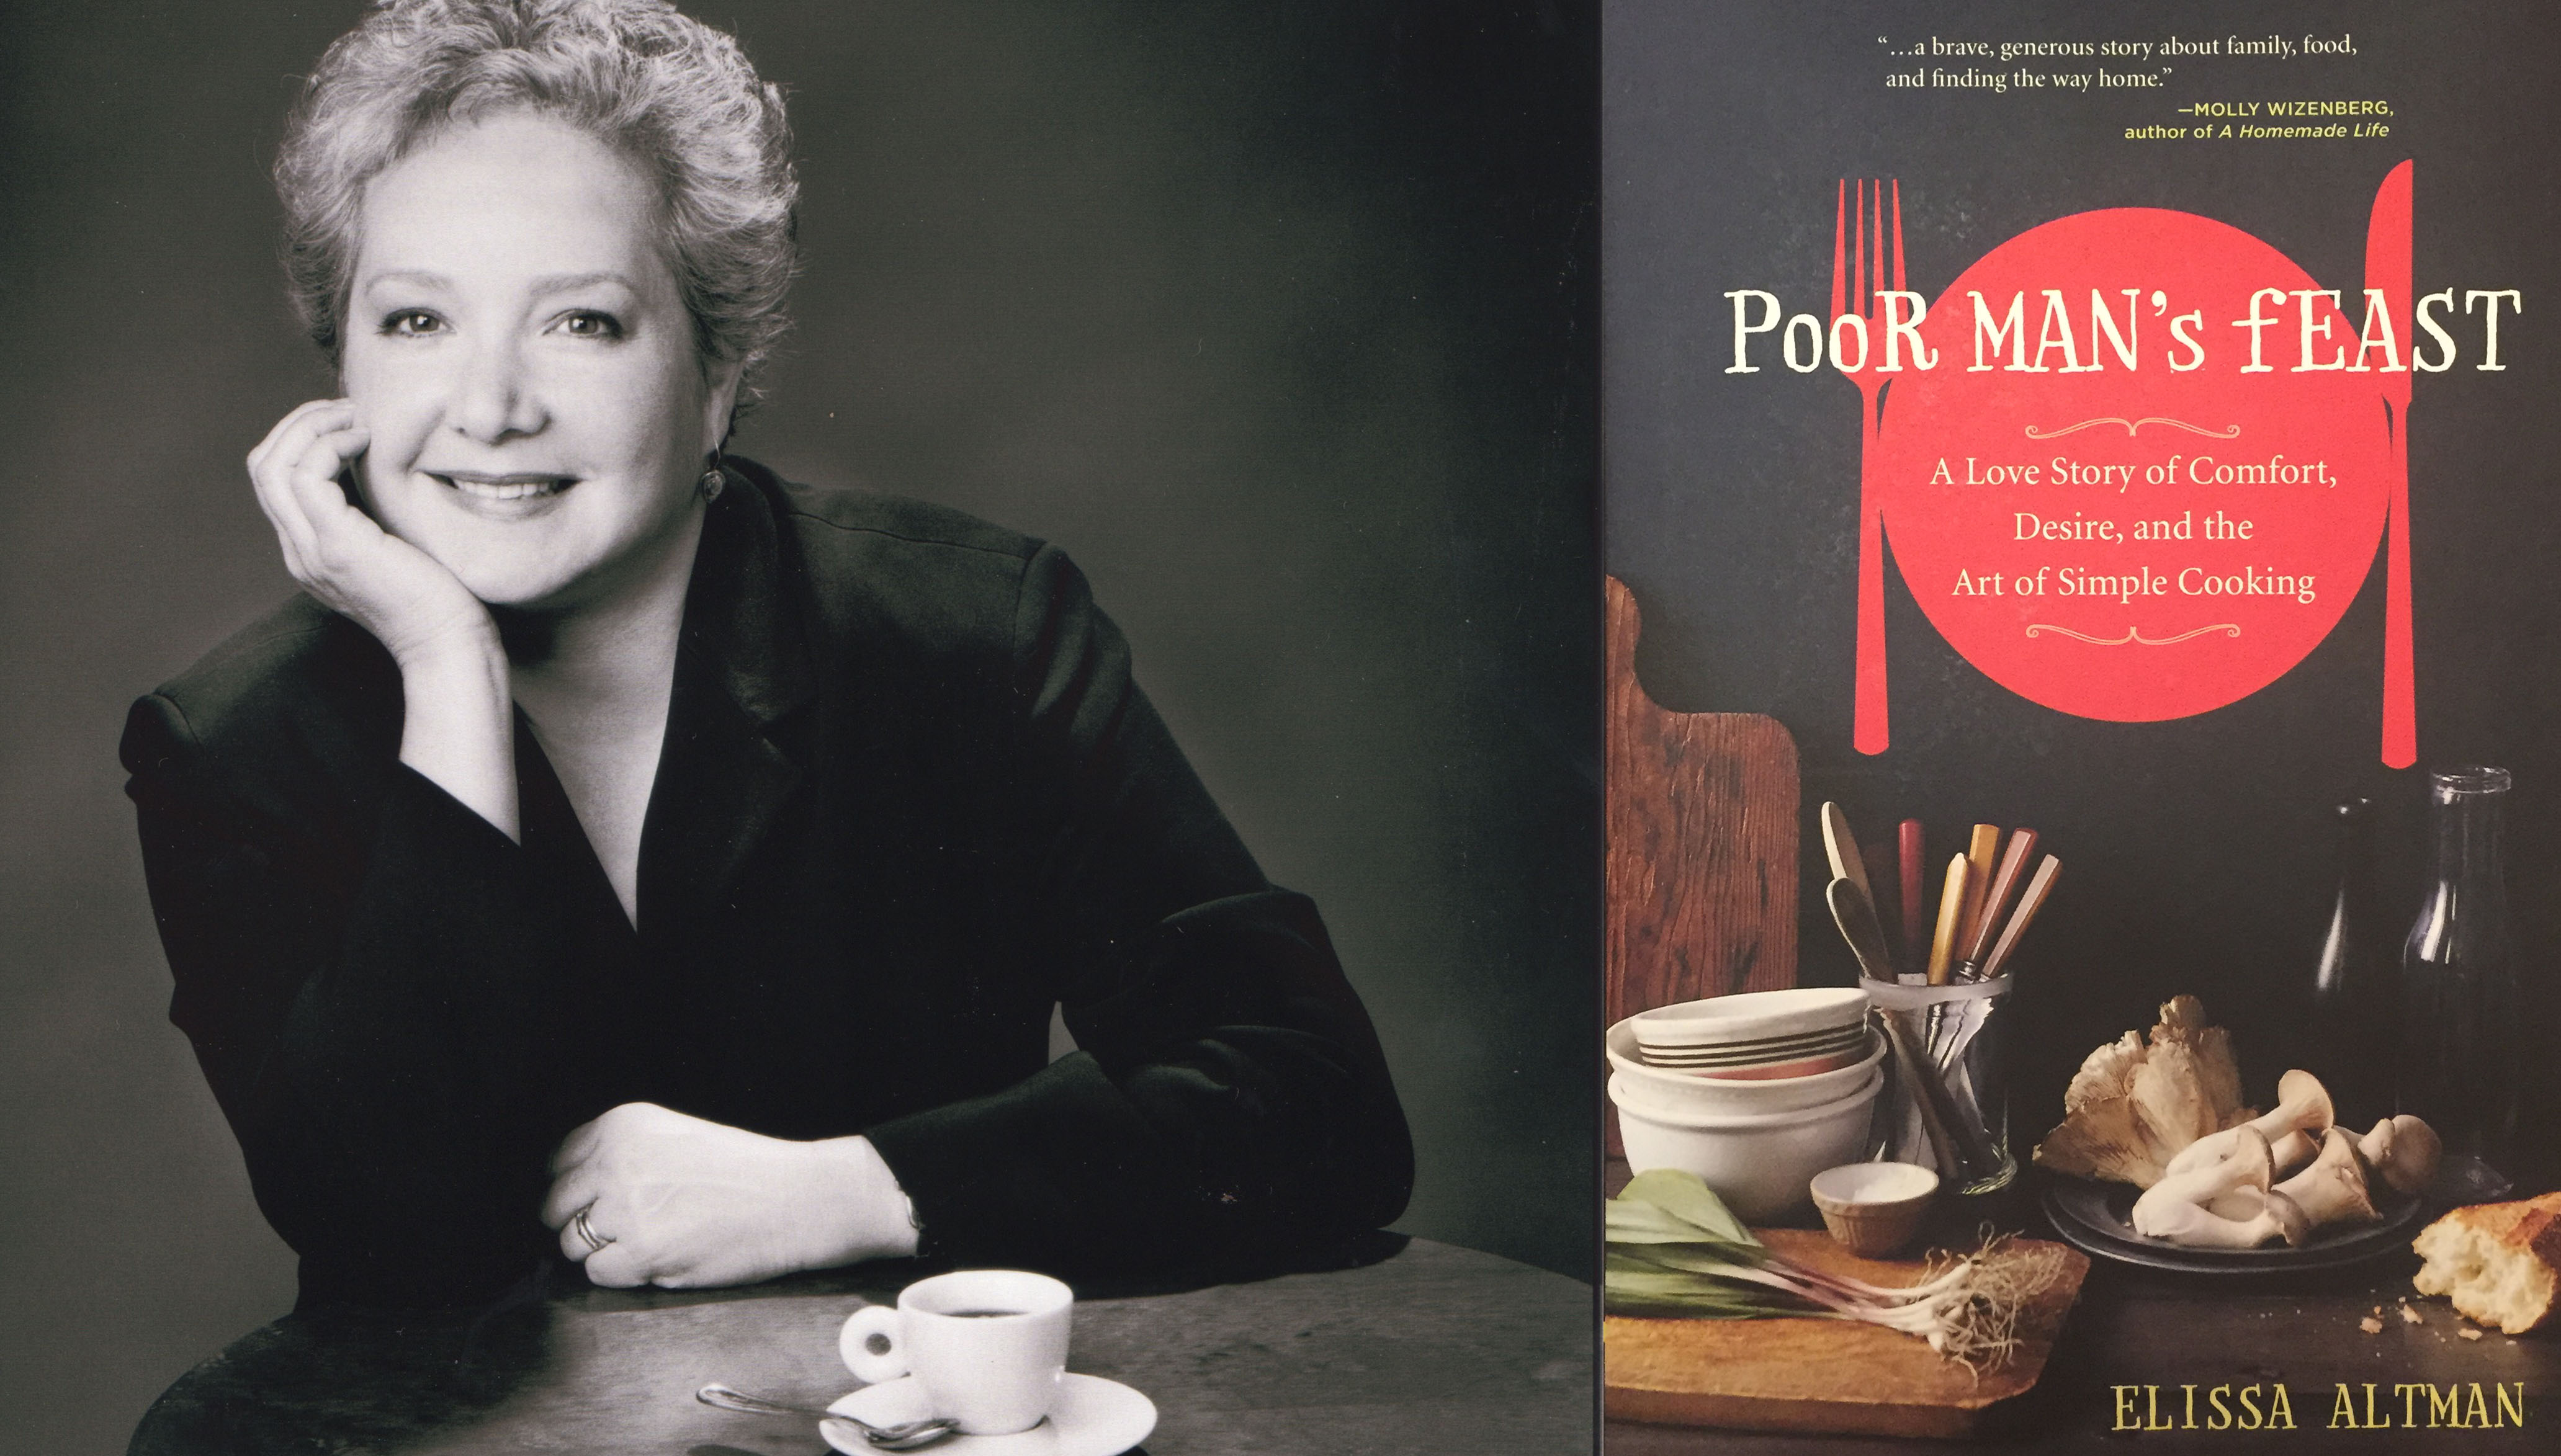 Book group poor mans feast by elissa altman slow food russian river poor mans feast a love story of comfort desire and the art of the slow food russian river book forumfinder Image collections